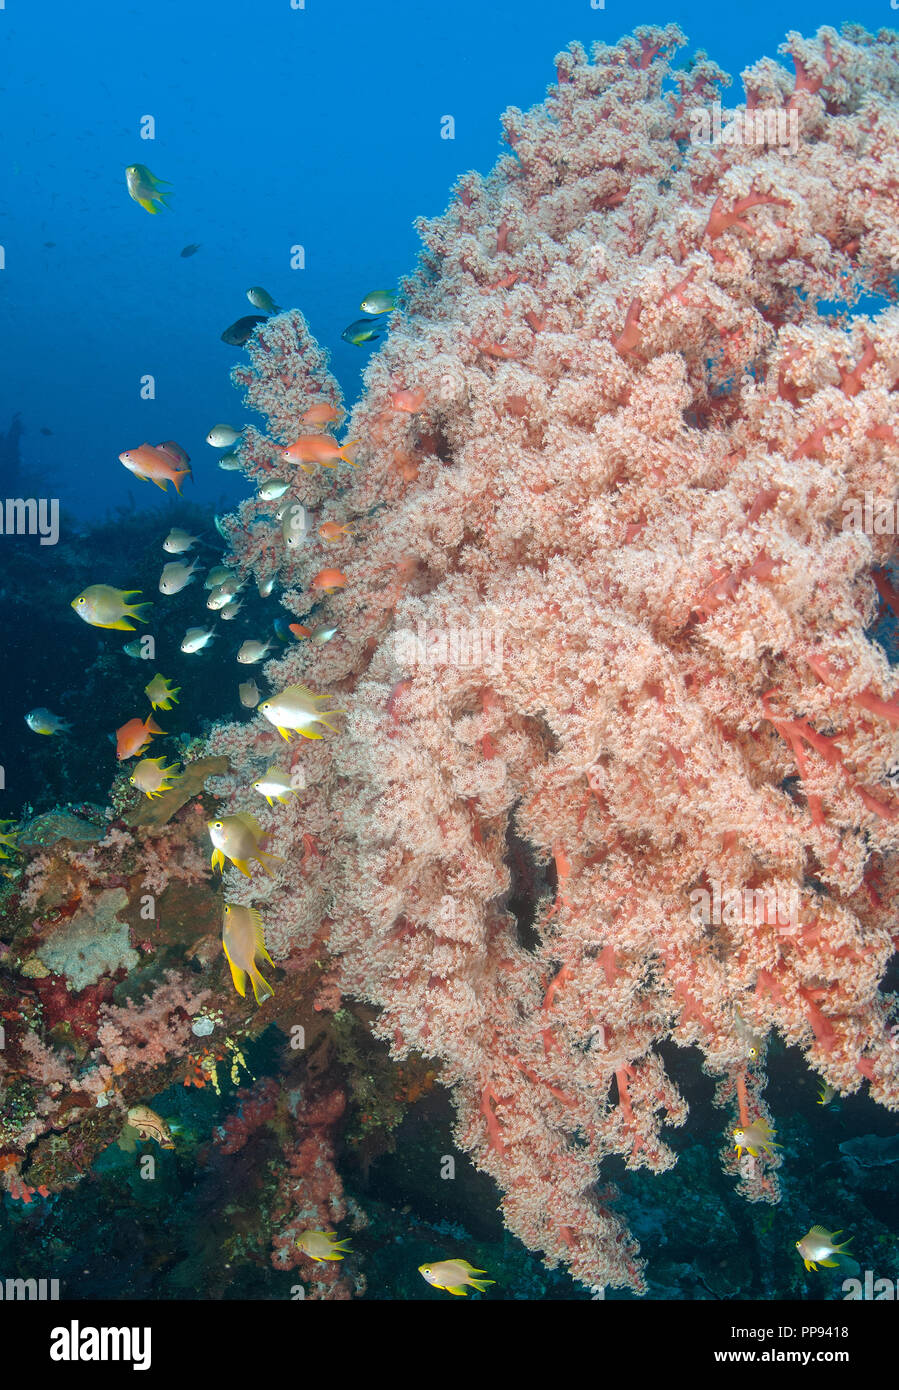 Scenic view of softcoral, Siphonogorgia godeffroyi, Liberty Wreck Bali Indonesia. - Stock Image